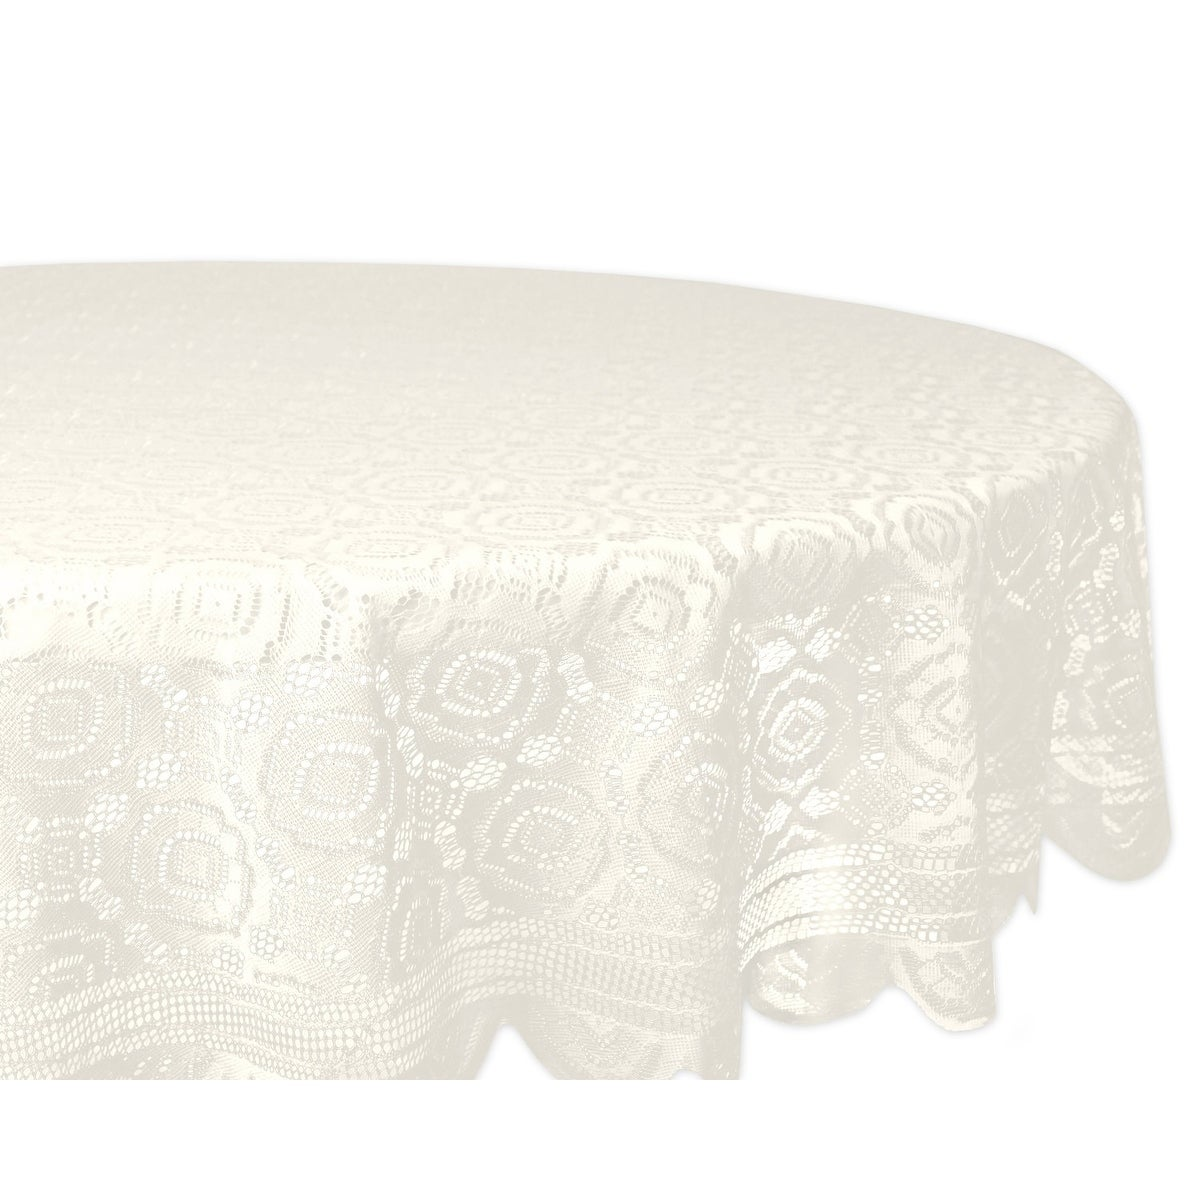 Design Imports Round Cream Vintage Polyester Lace Kitchen Tablecloth ...